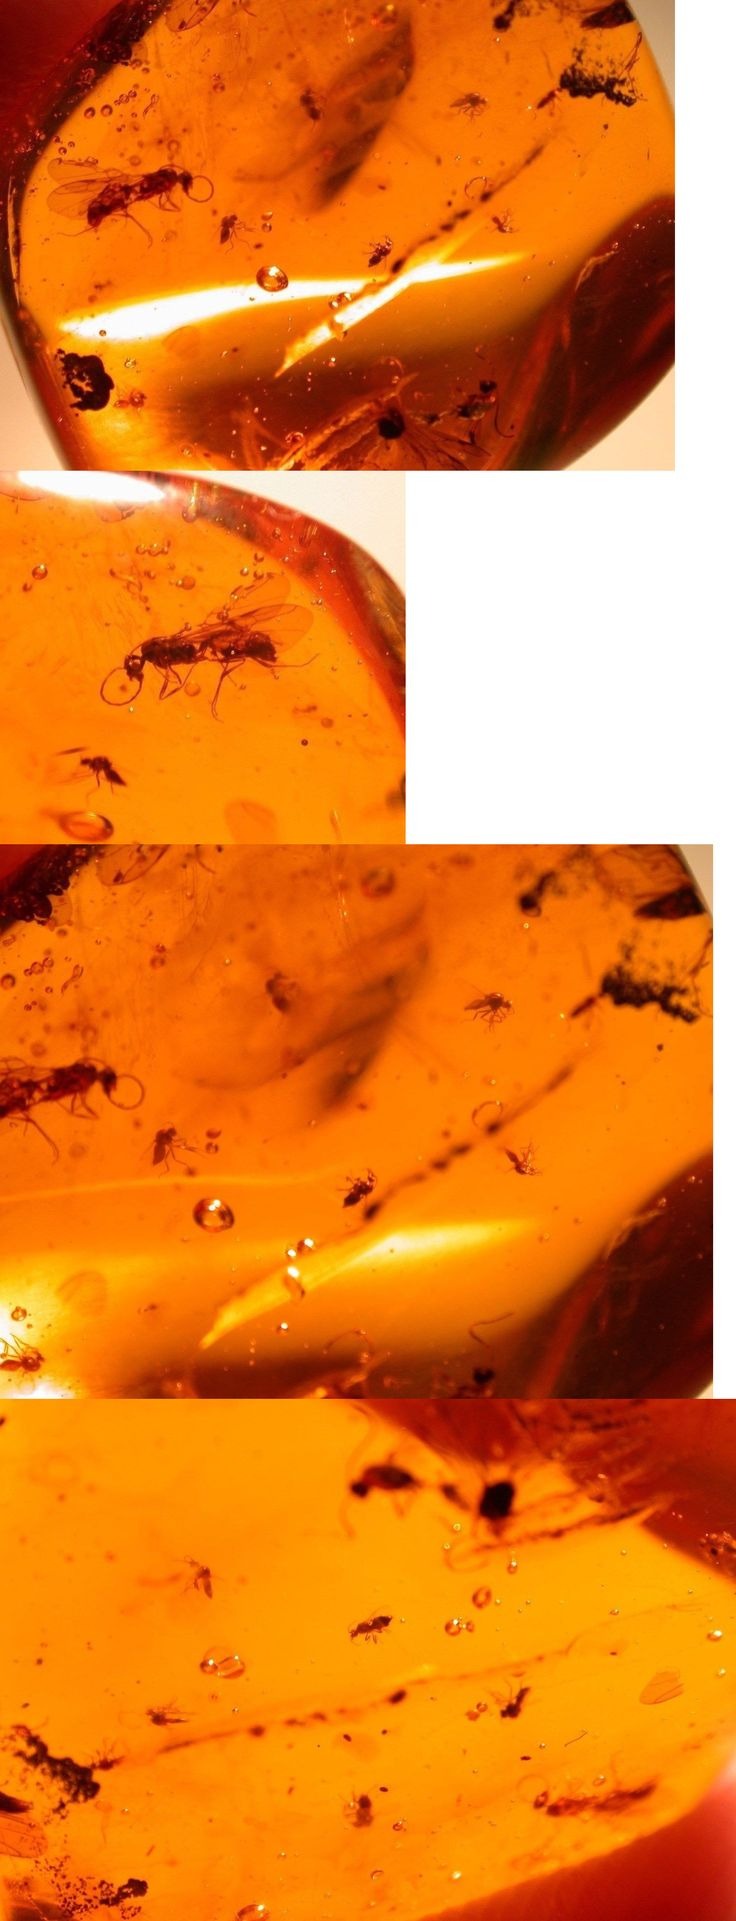 Amber 10191: Swarm Of 9 Blood Sucking Flies With 2 Winged Ants In Authentic Dominican Amber BUY IT NOW ONLY: $44.0